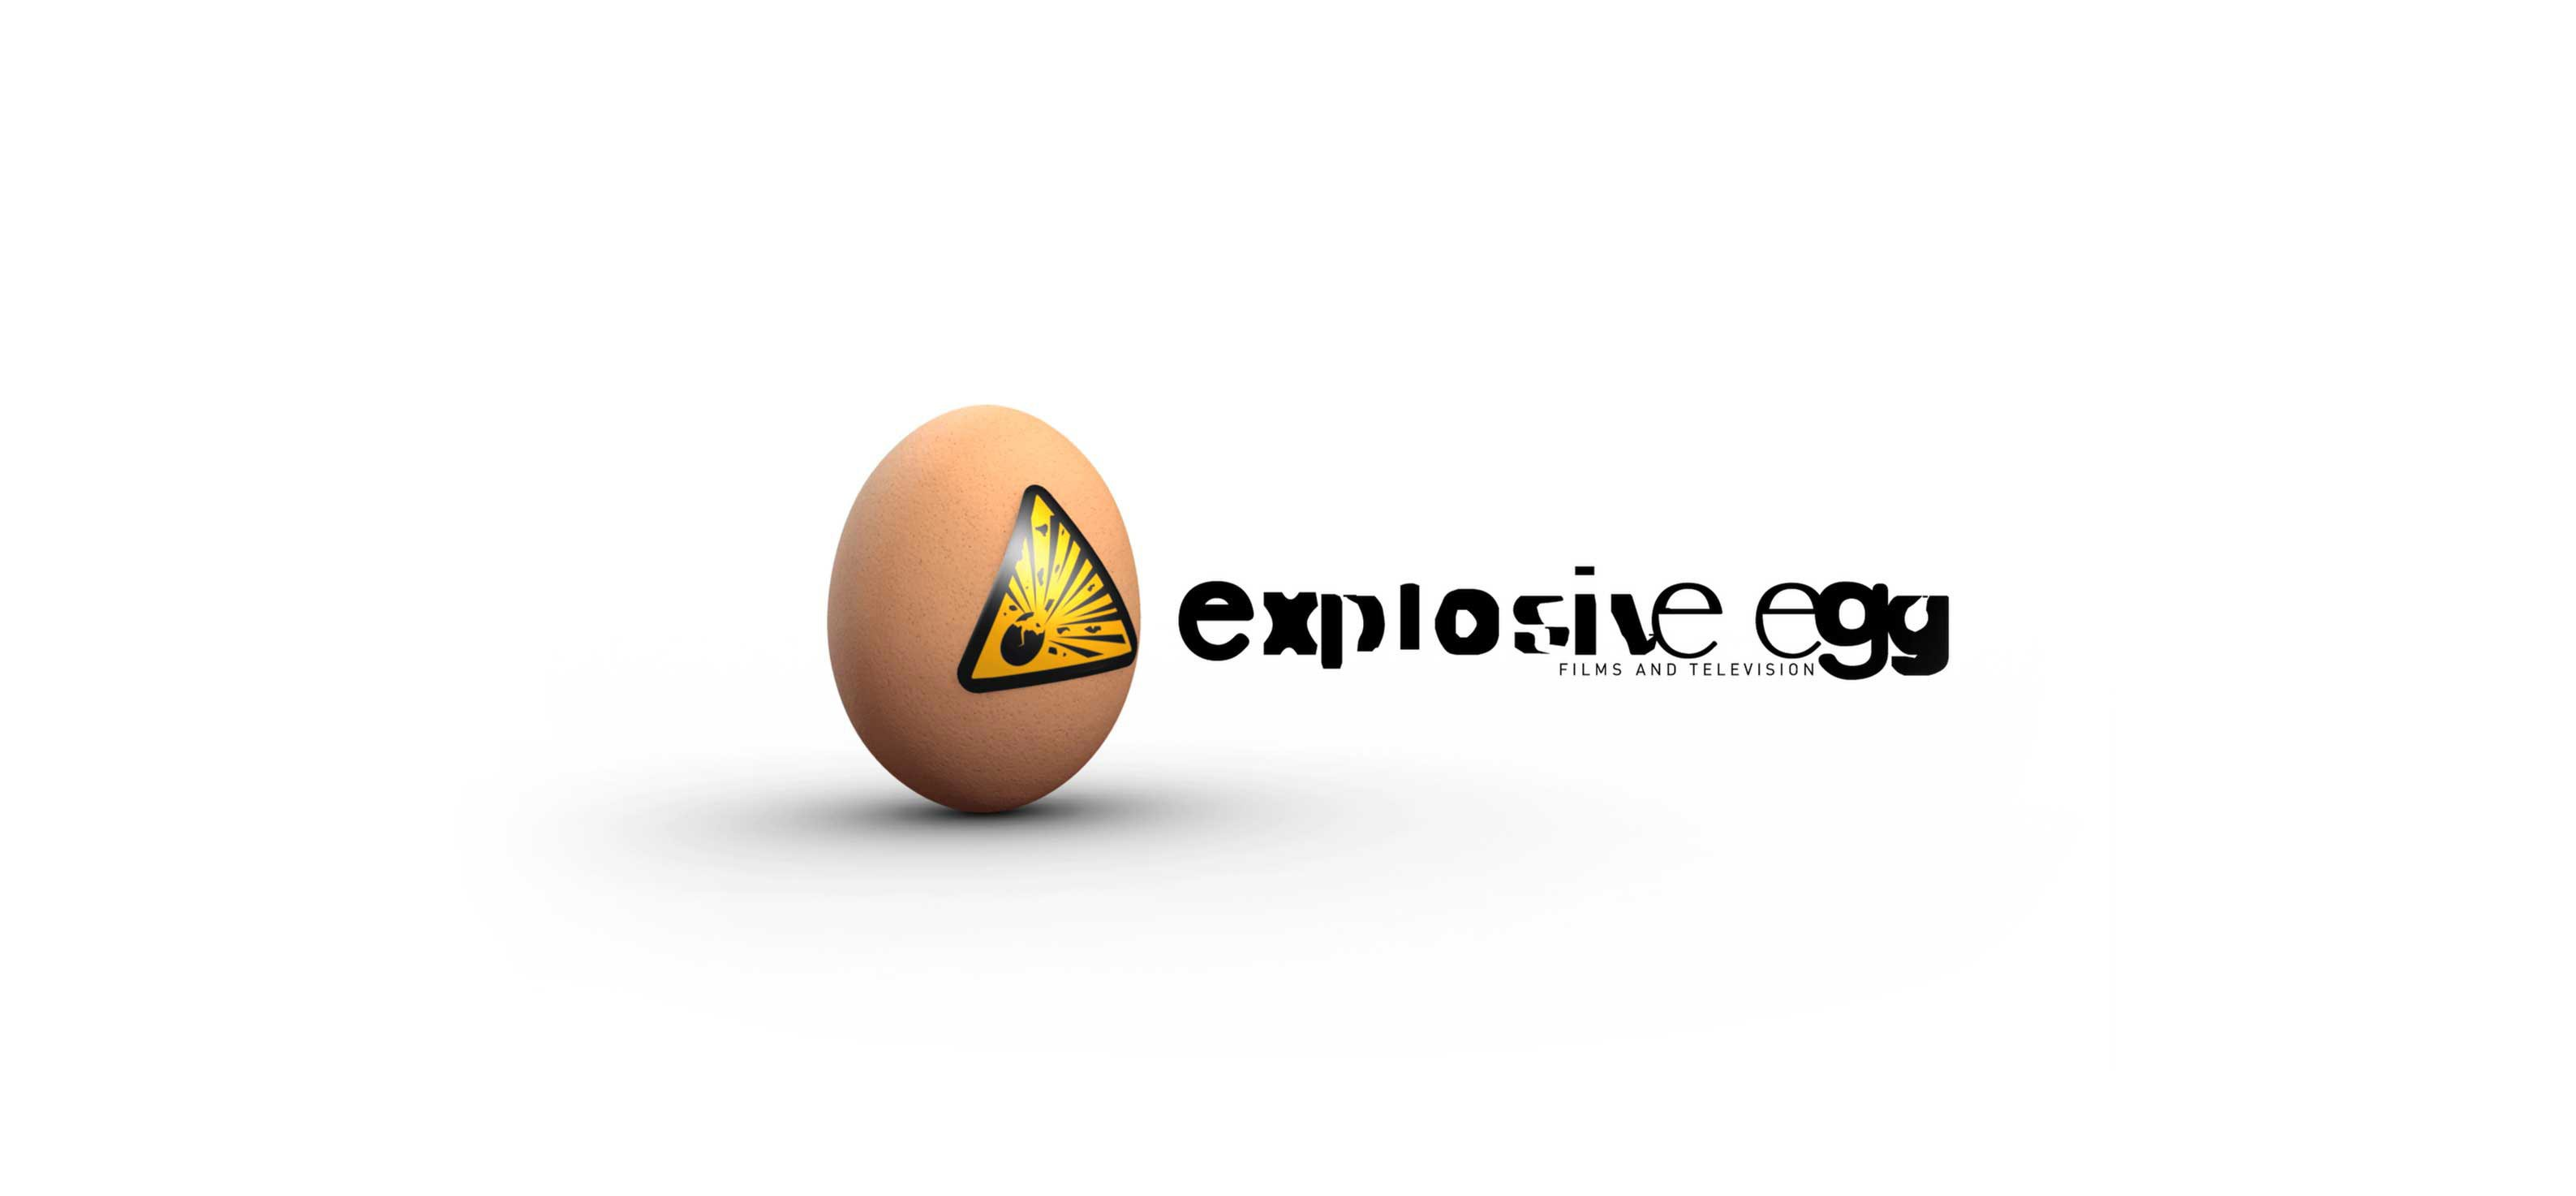 explosive egg films and television